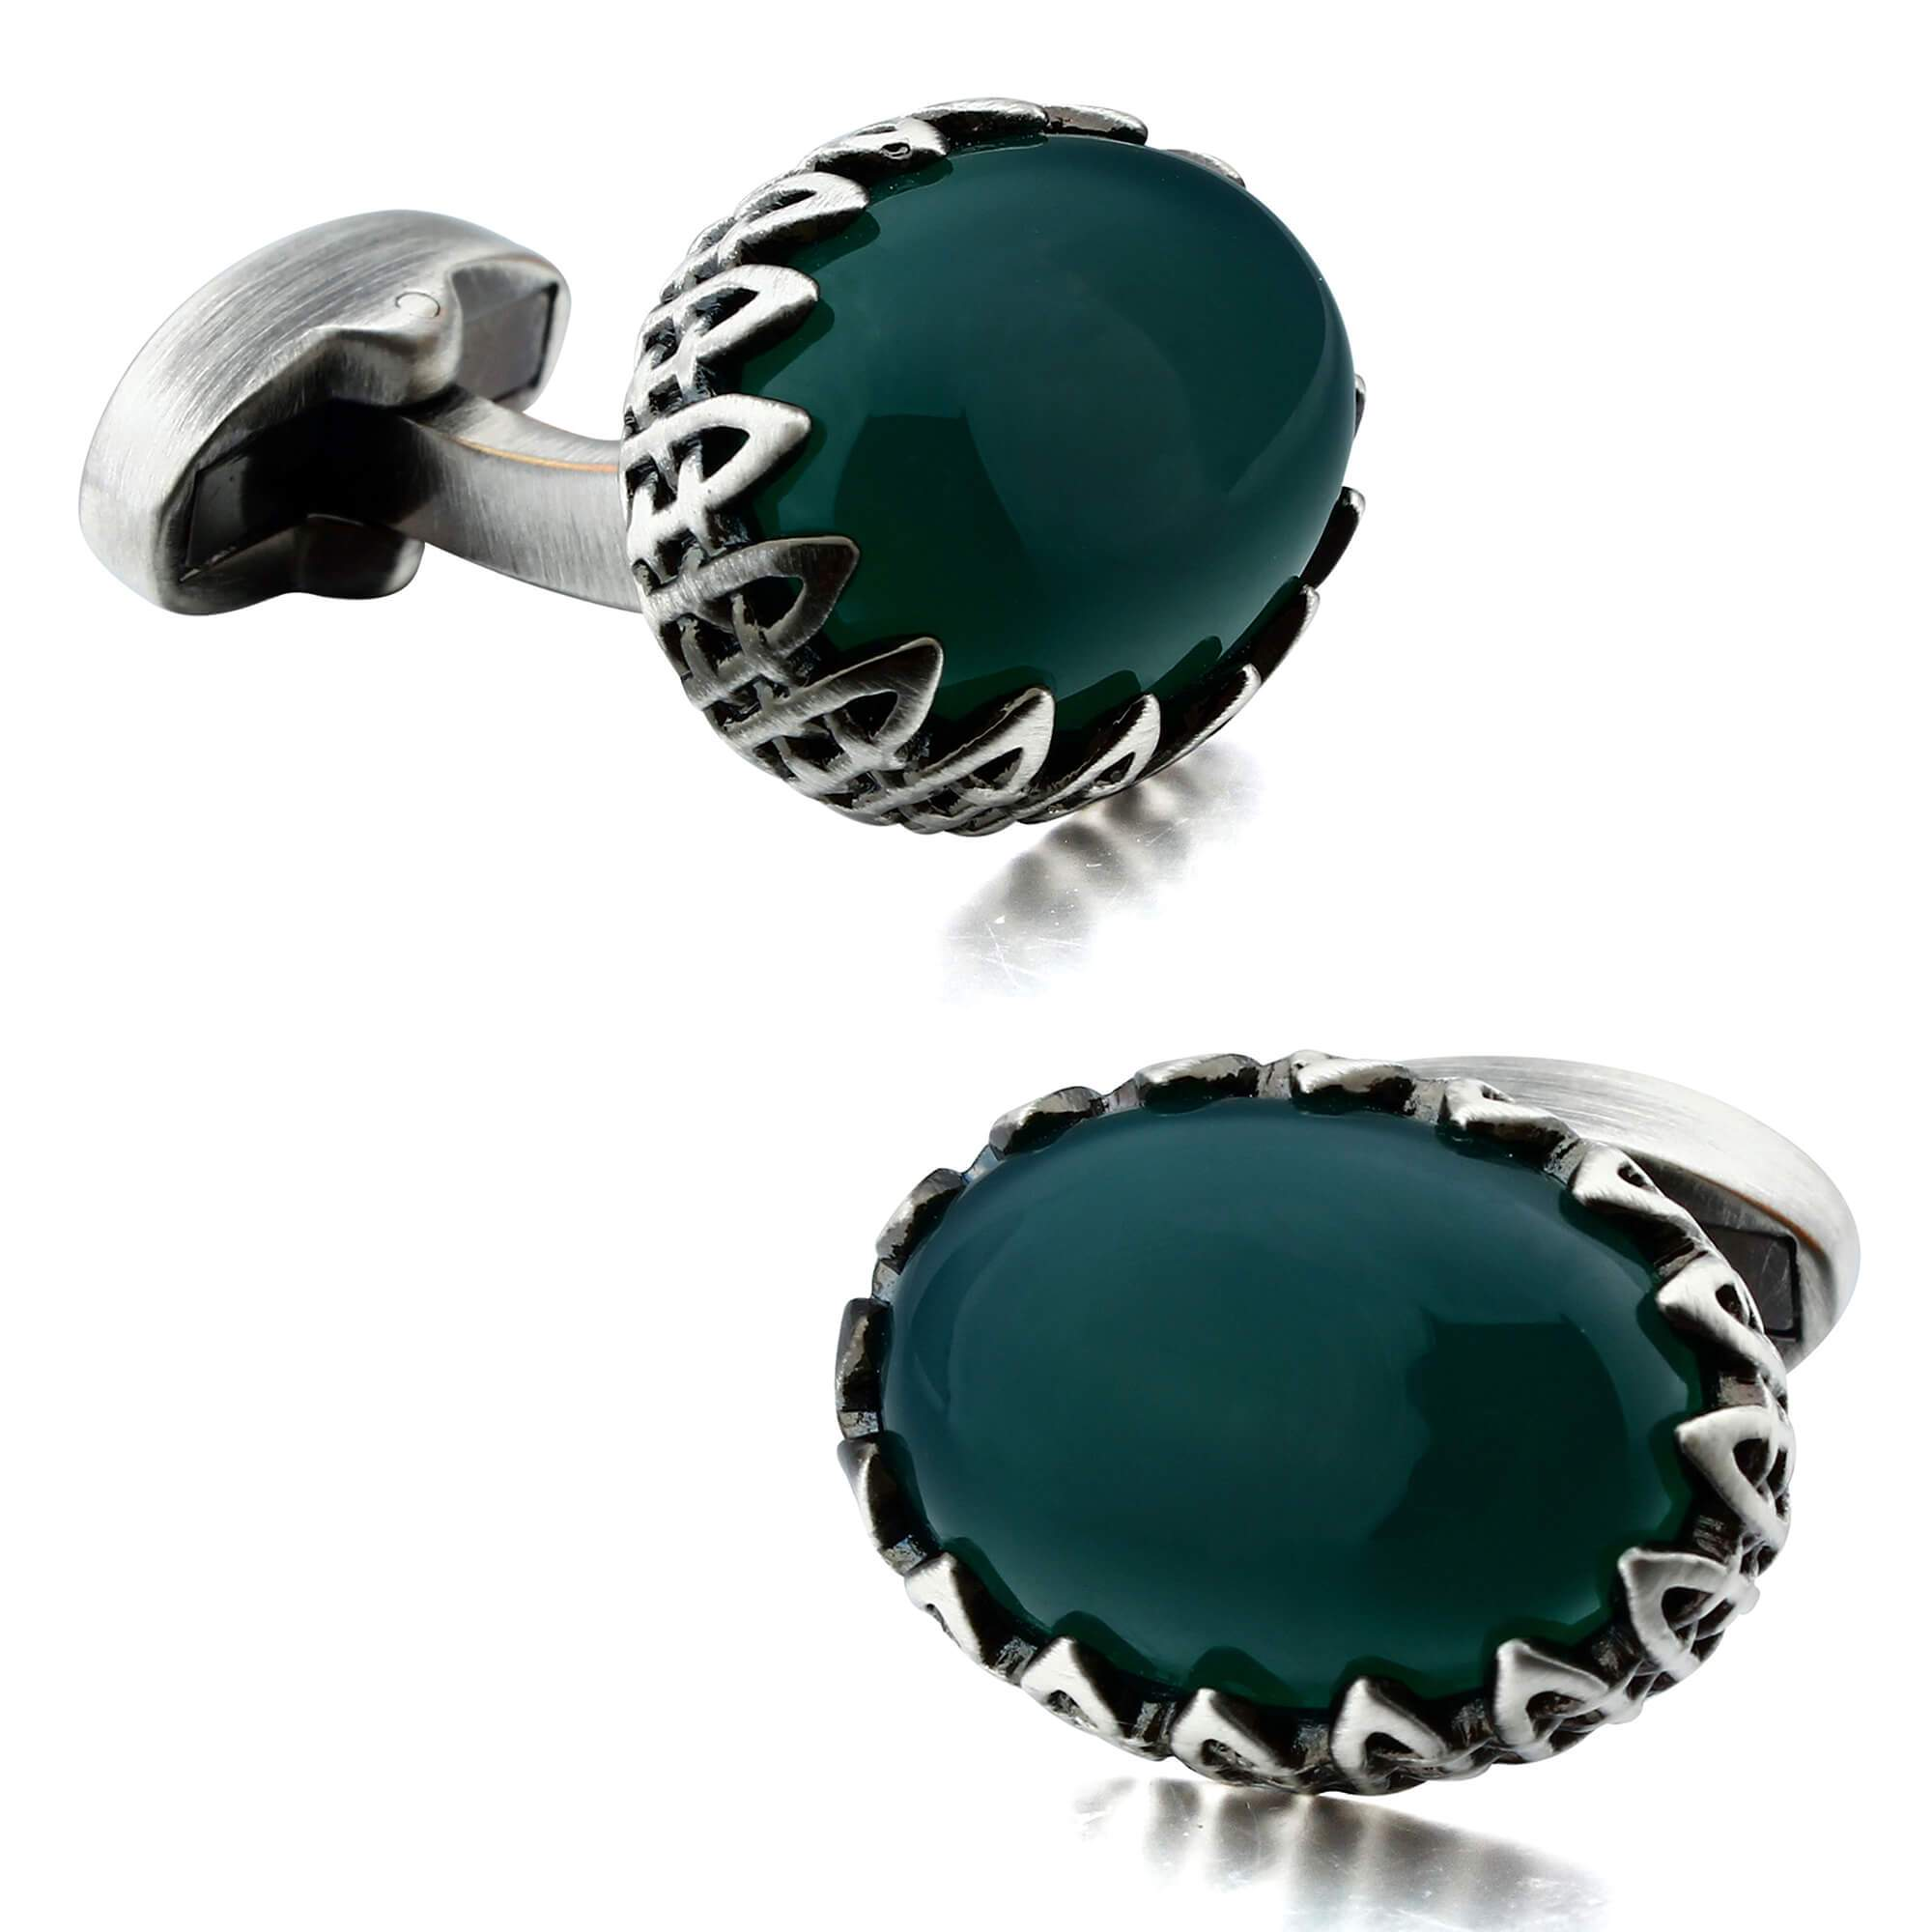 Green Agate in Antique Silver Cufflinks Classic & Modern Cufflinks Clinks Australia Default